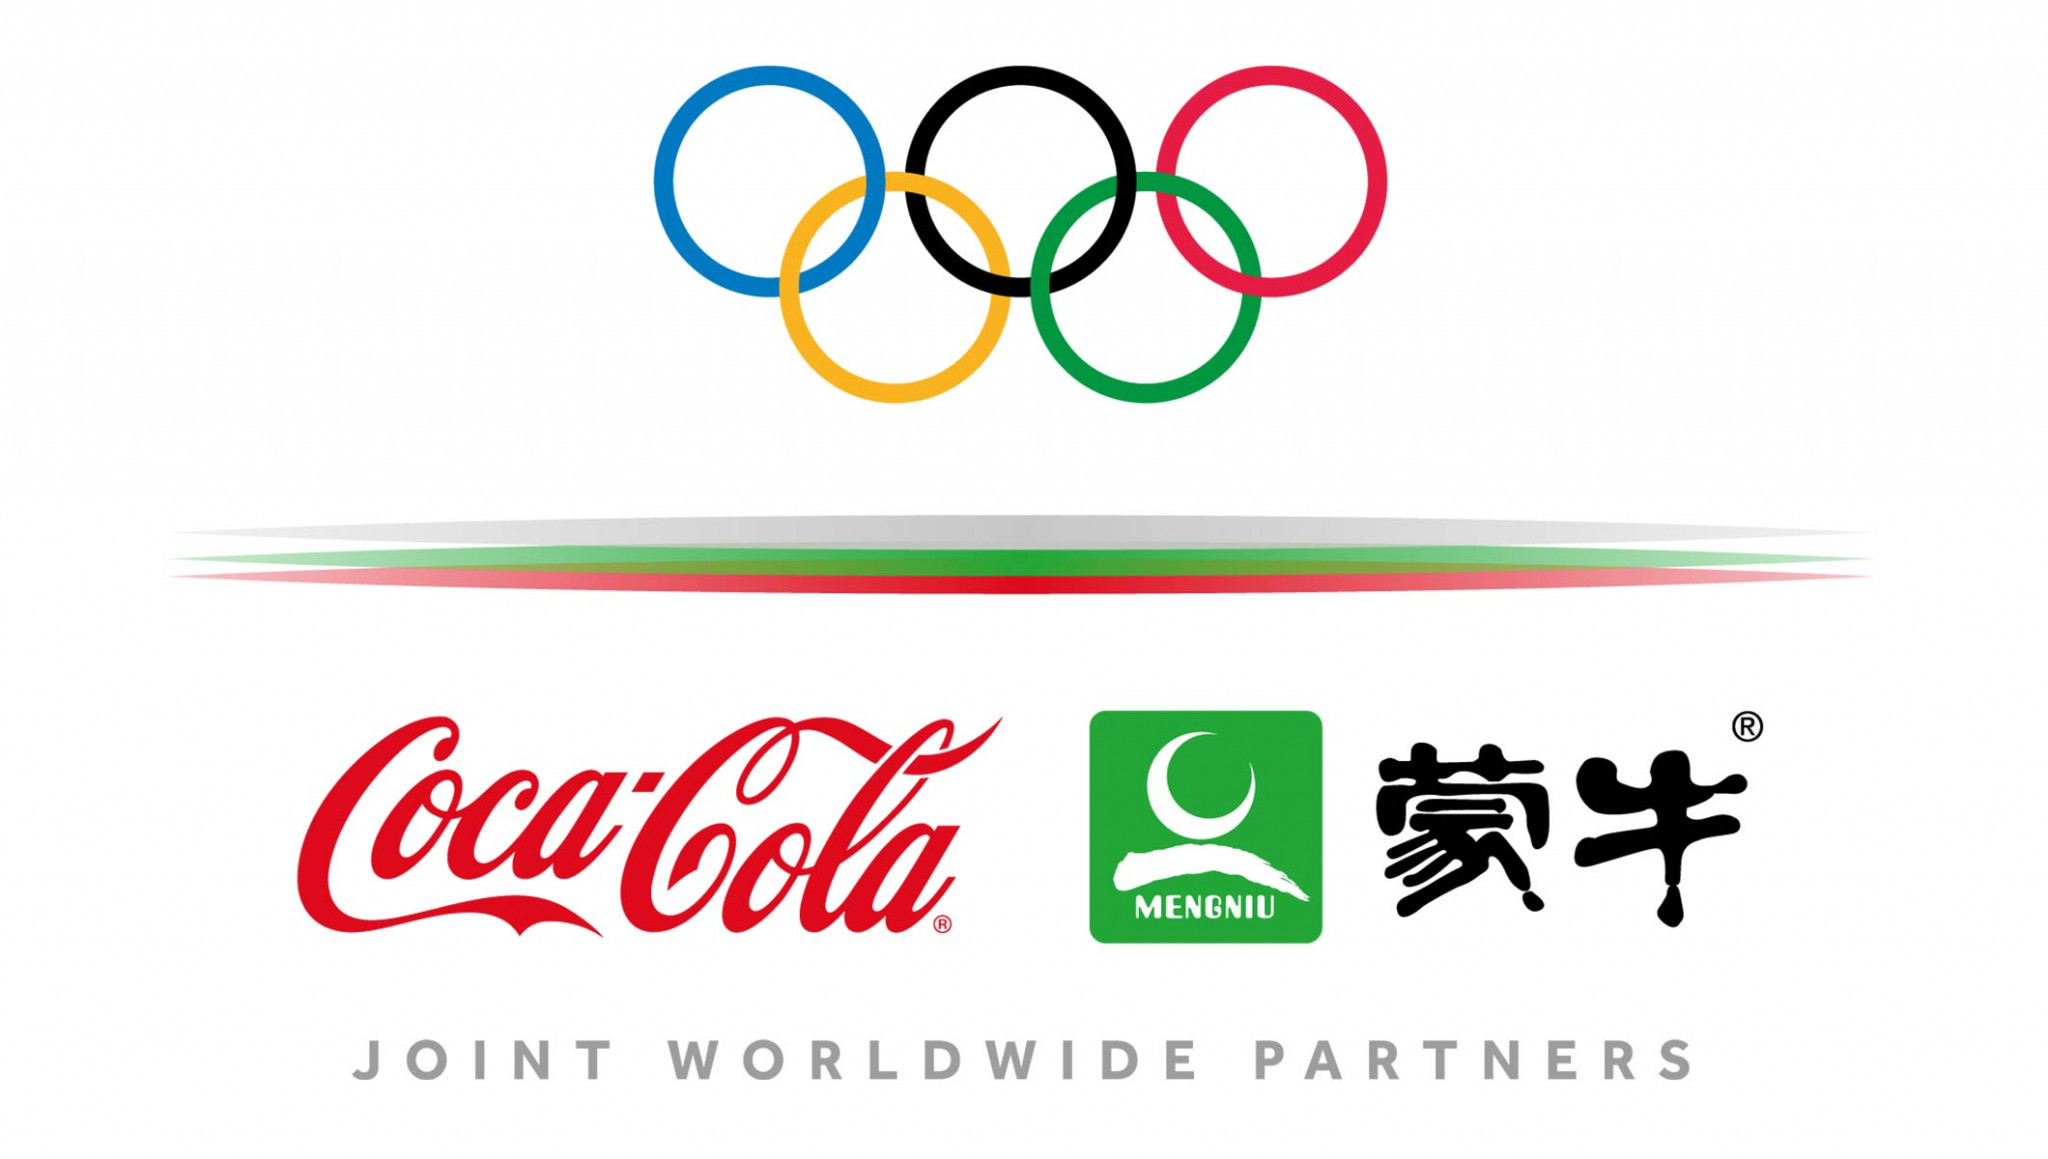 Coca-Cola extends Olympic sponsorship until 2032 in partnership with Chinese dairy producer